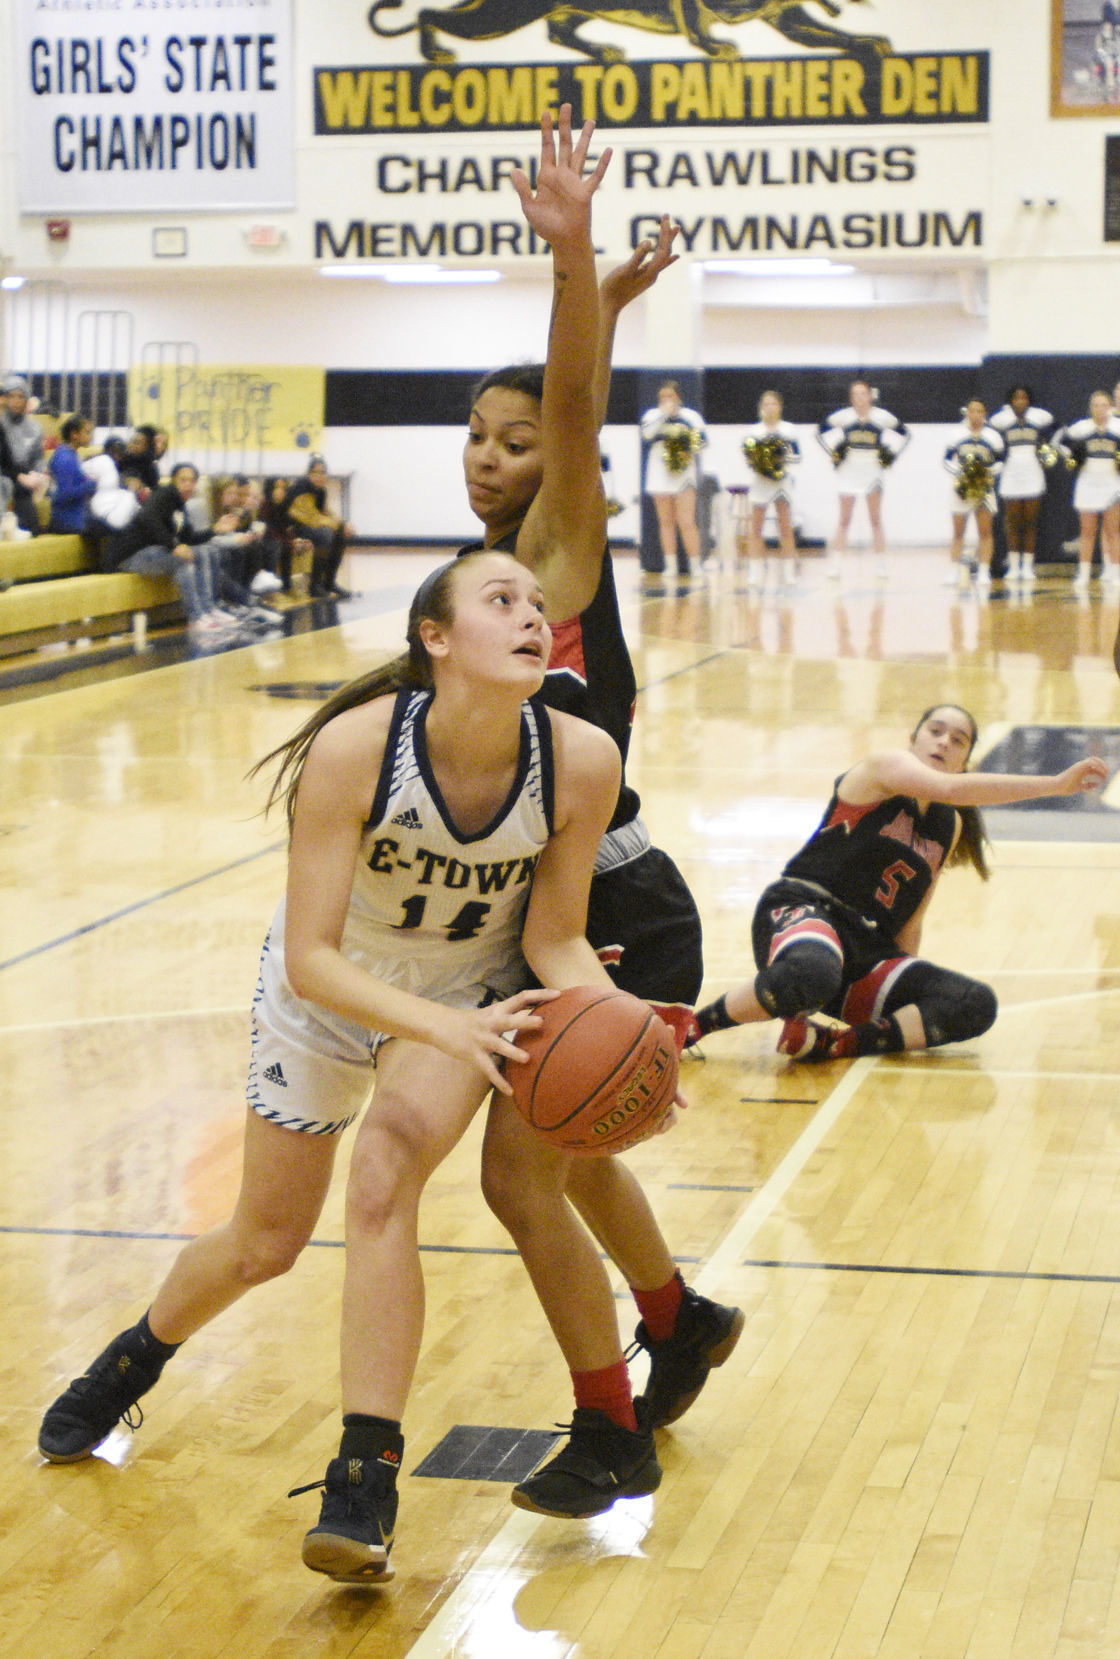 ORDER ON THE COURT: Elizabethtown Girls: 'This team could be special'